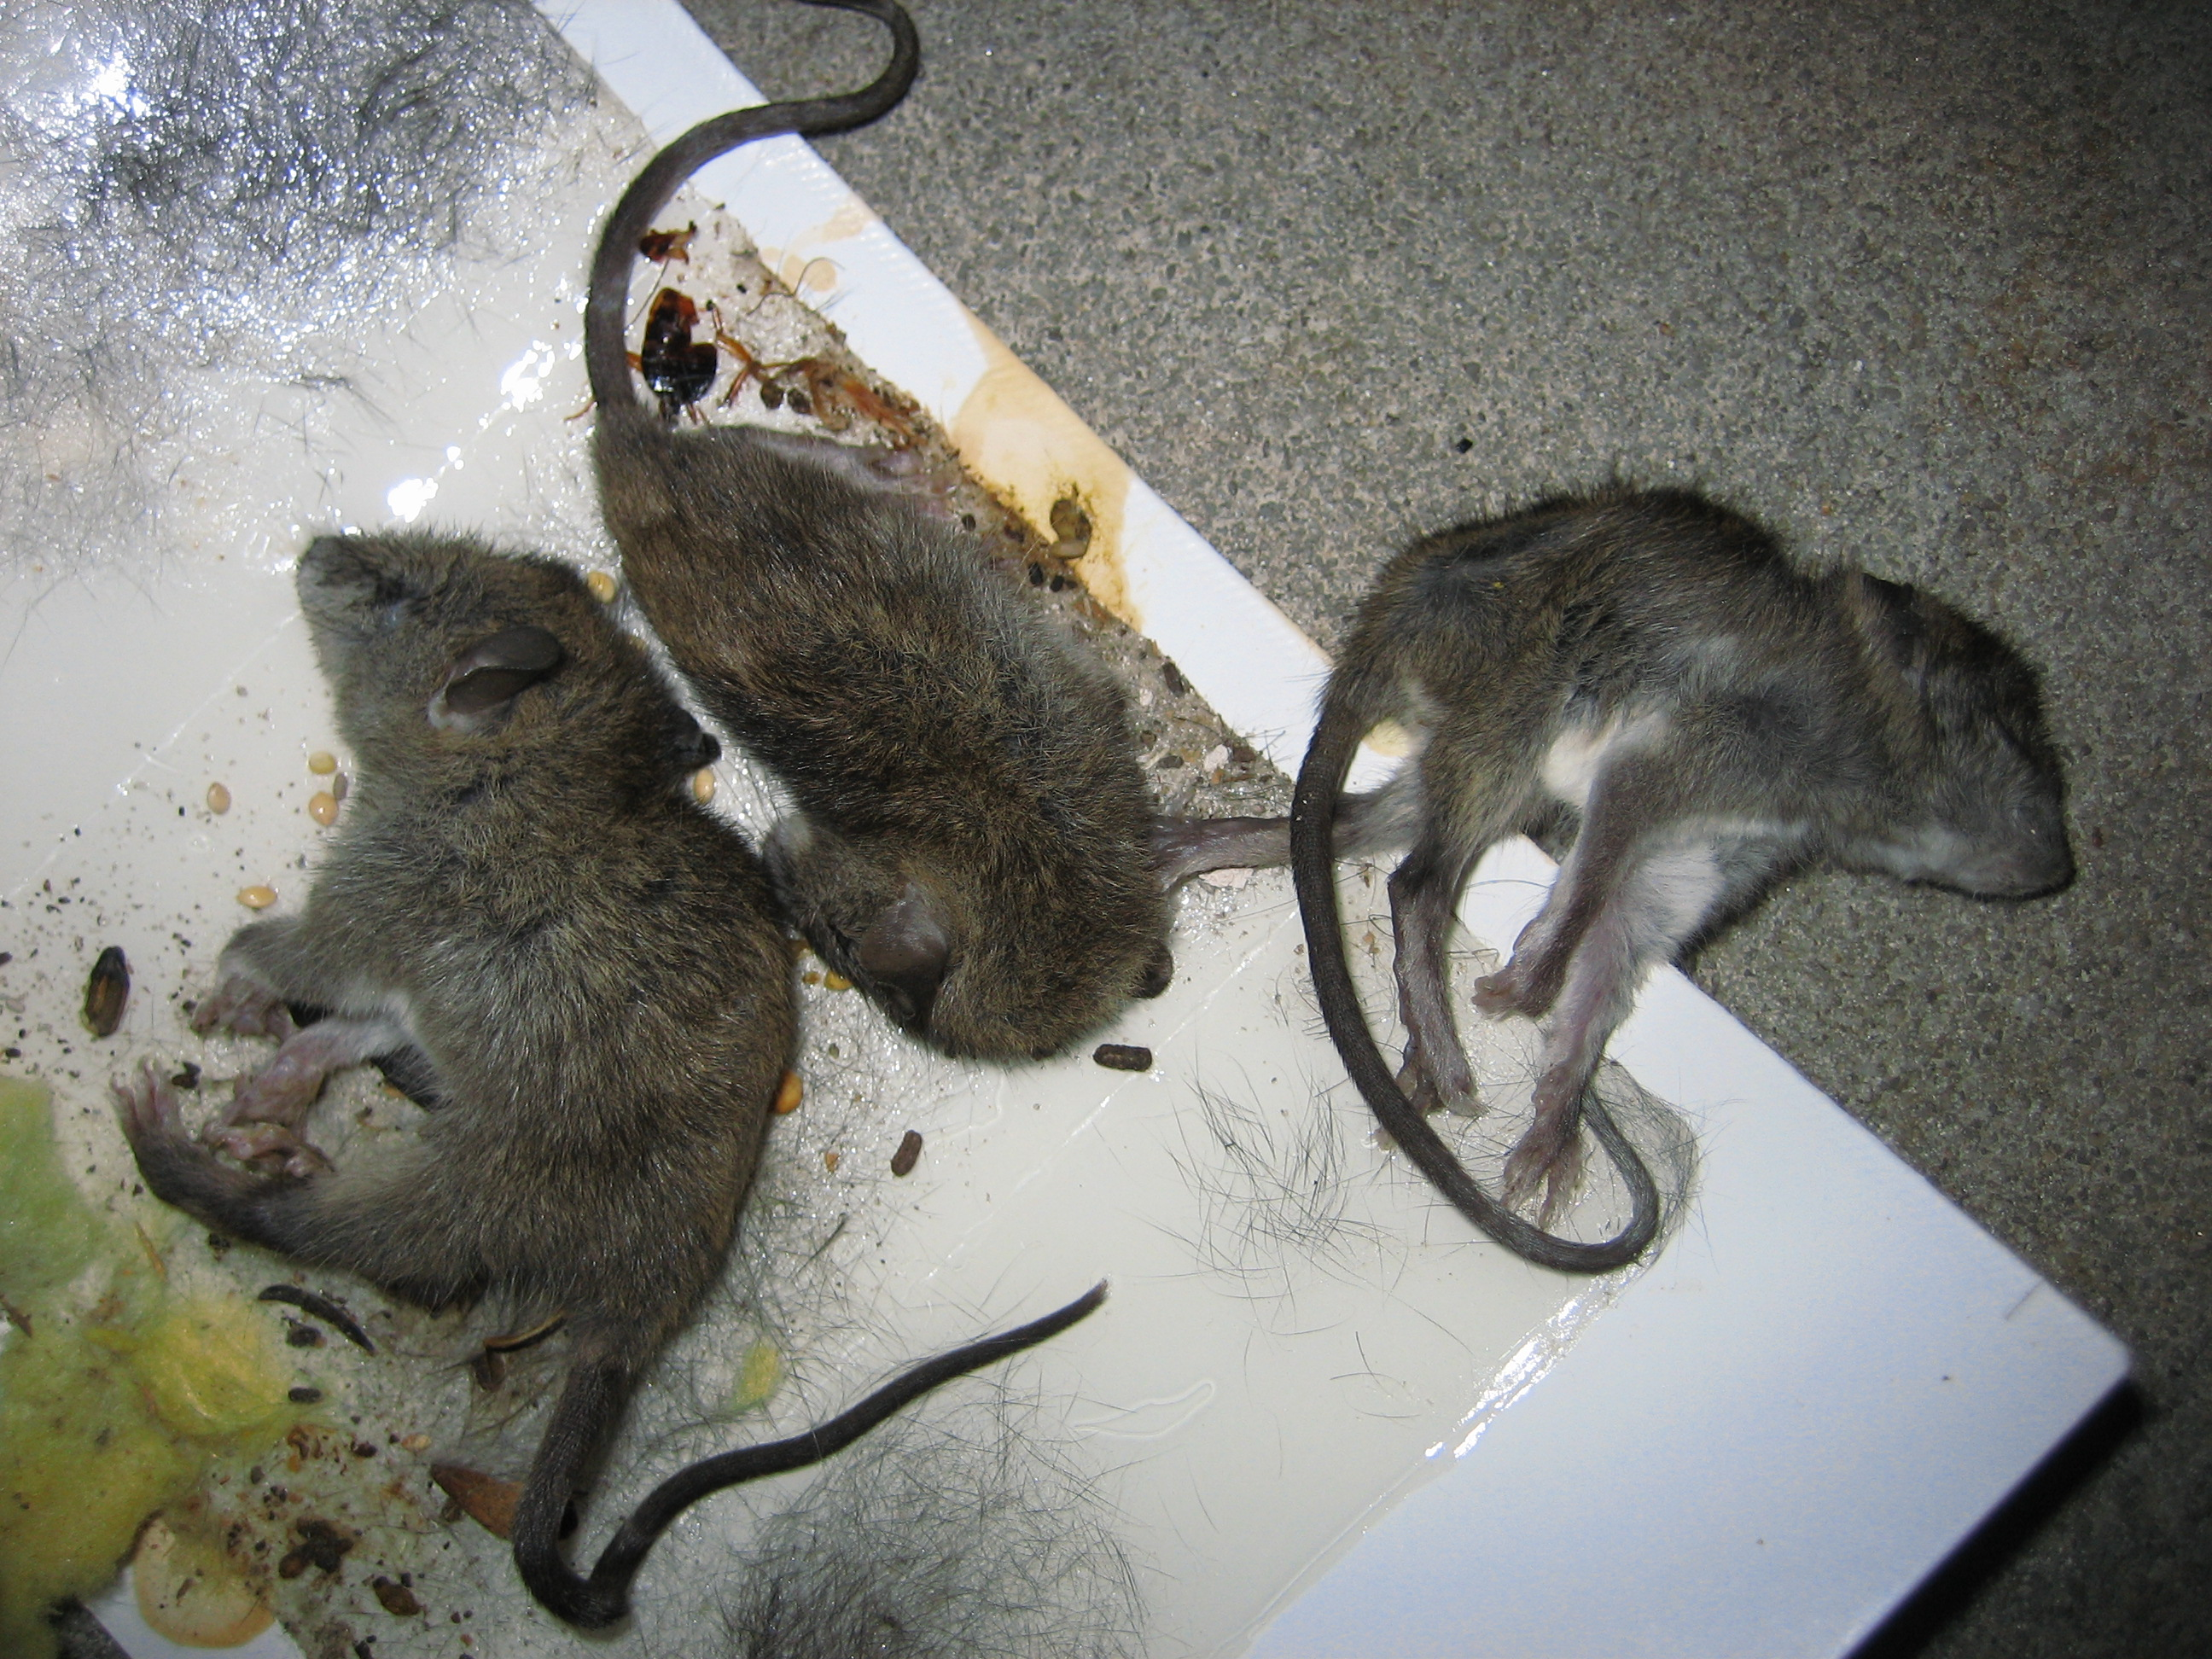 Three Dead Mice Caught in Glue Trap